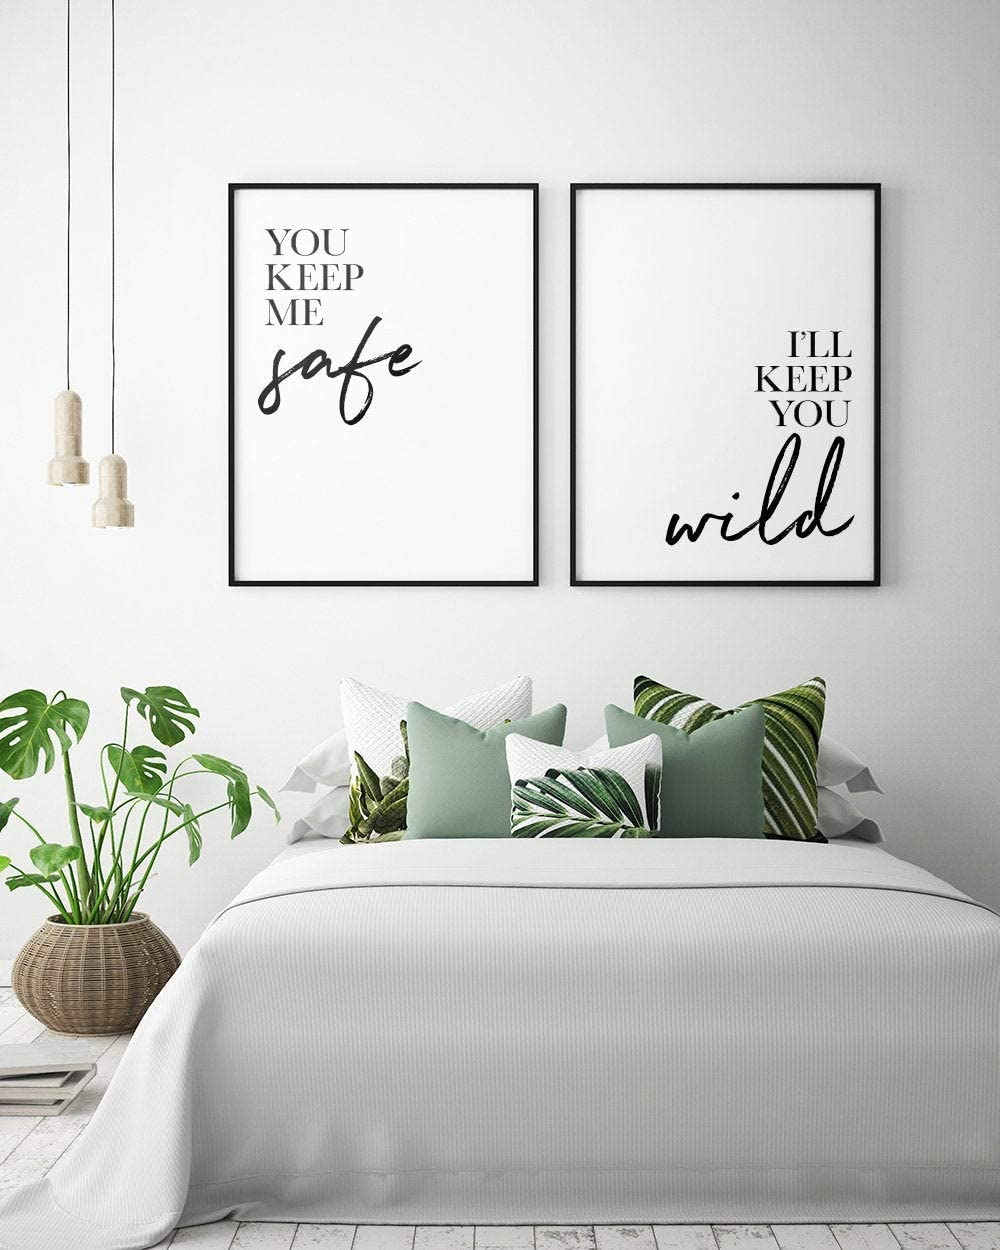 Bedroom s: You Keep Me Safe I'll Keep You Wild (Set of 2) Couple Bedroom Print Bedroom Wall Art Bedroom Decor